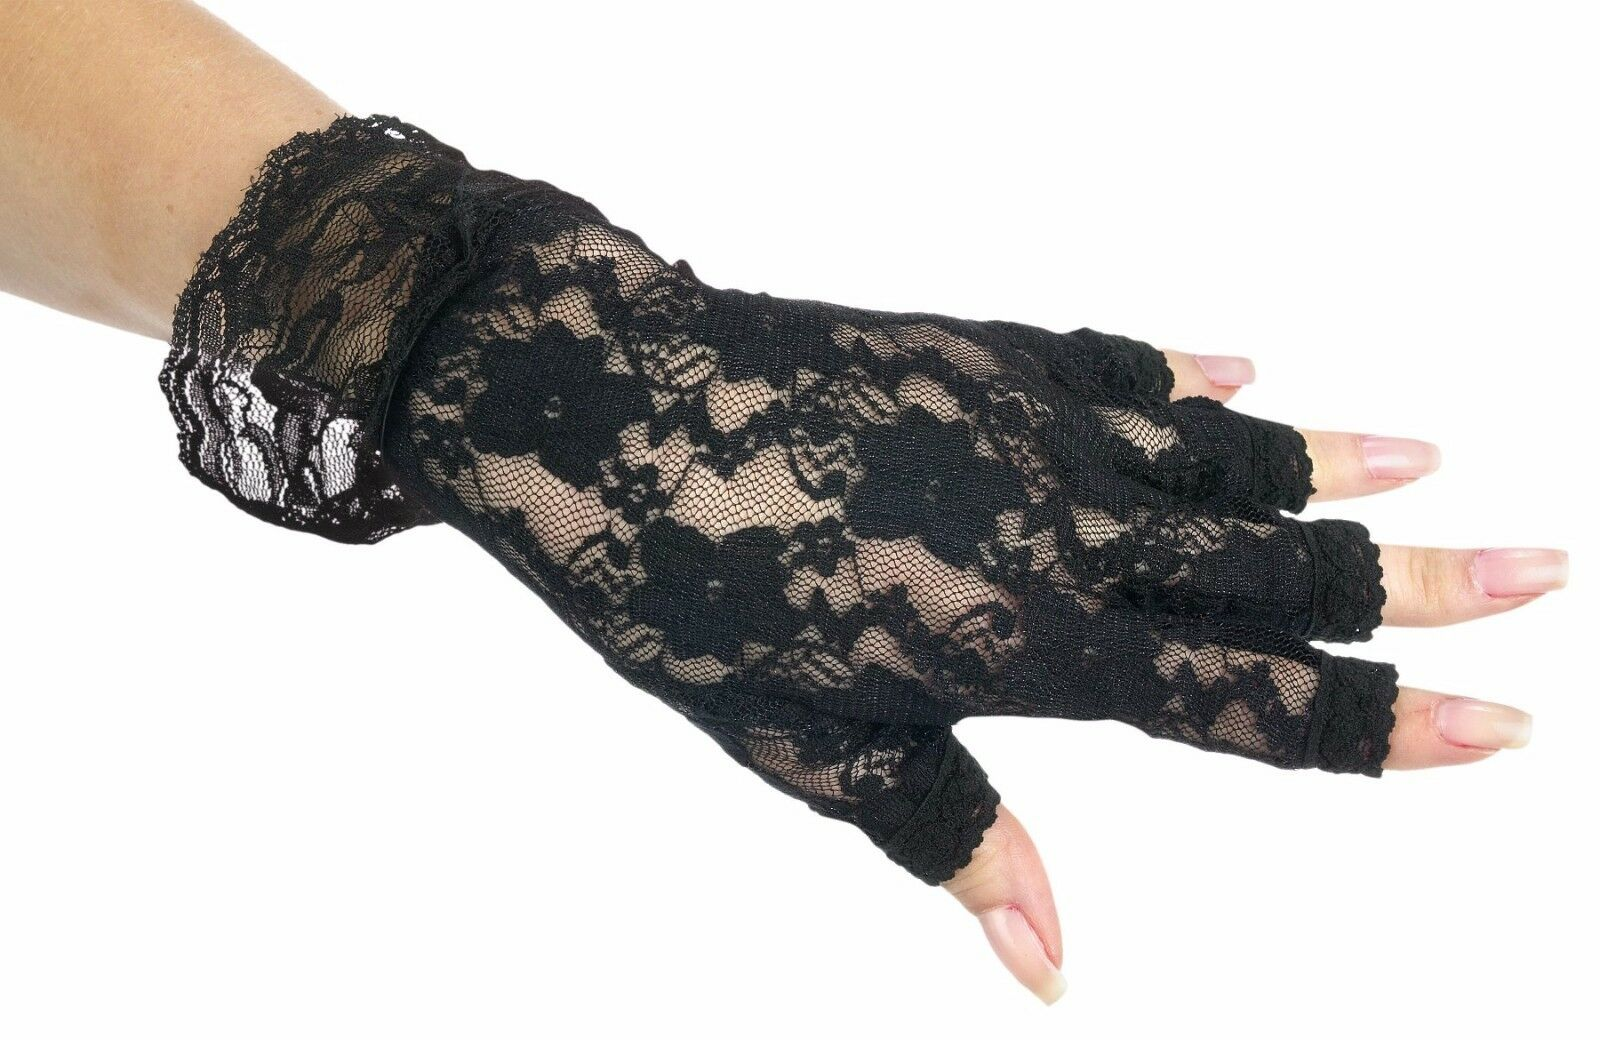 Rocking 80's 80s Black Fingerless Lace Gloves Adult Costume Accessory